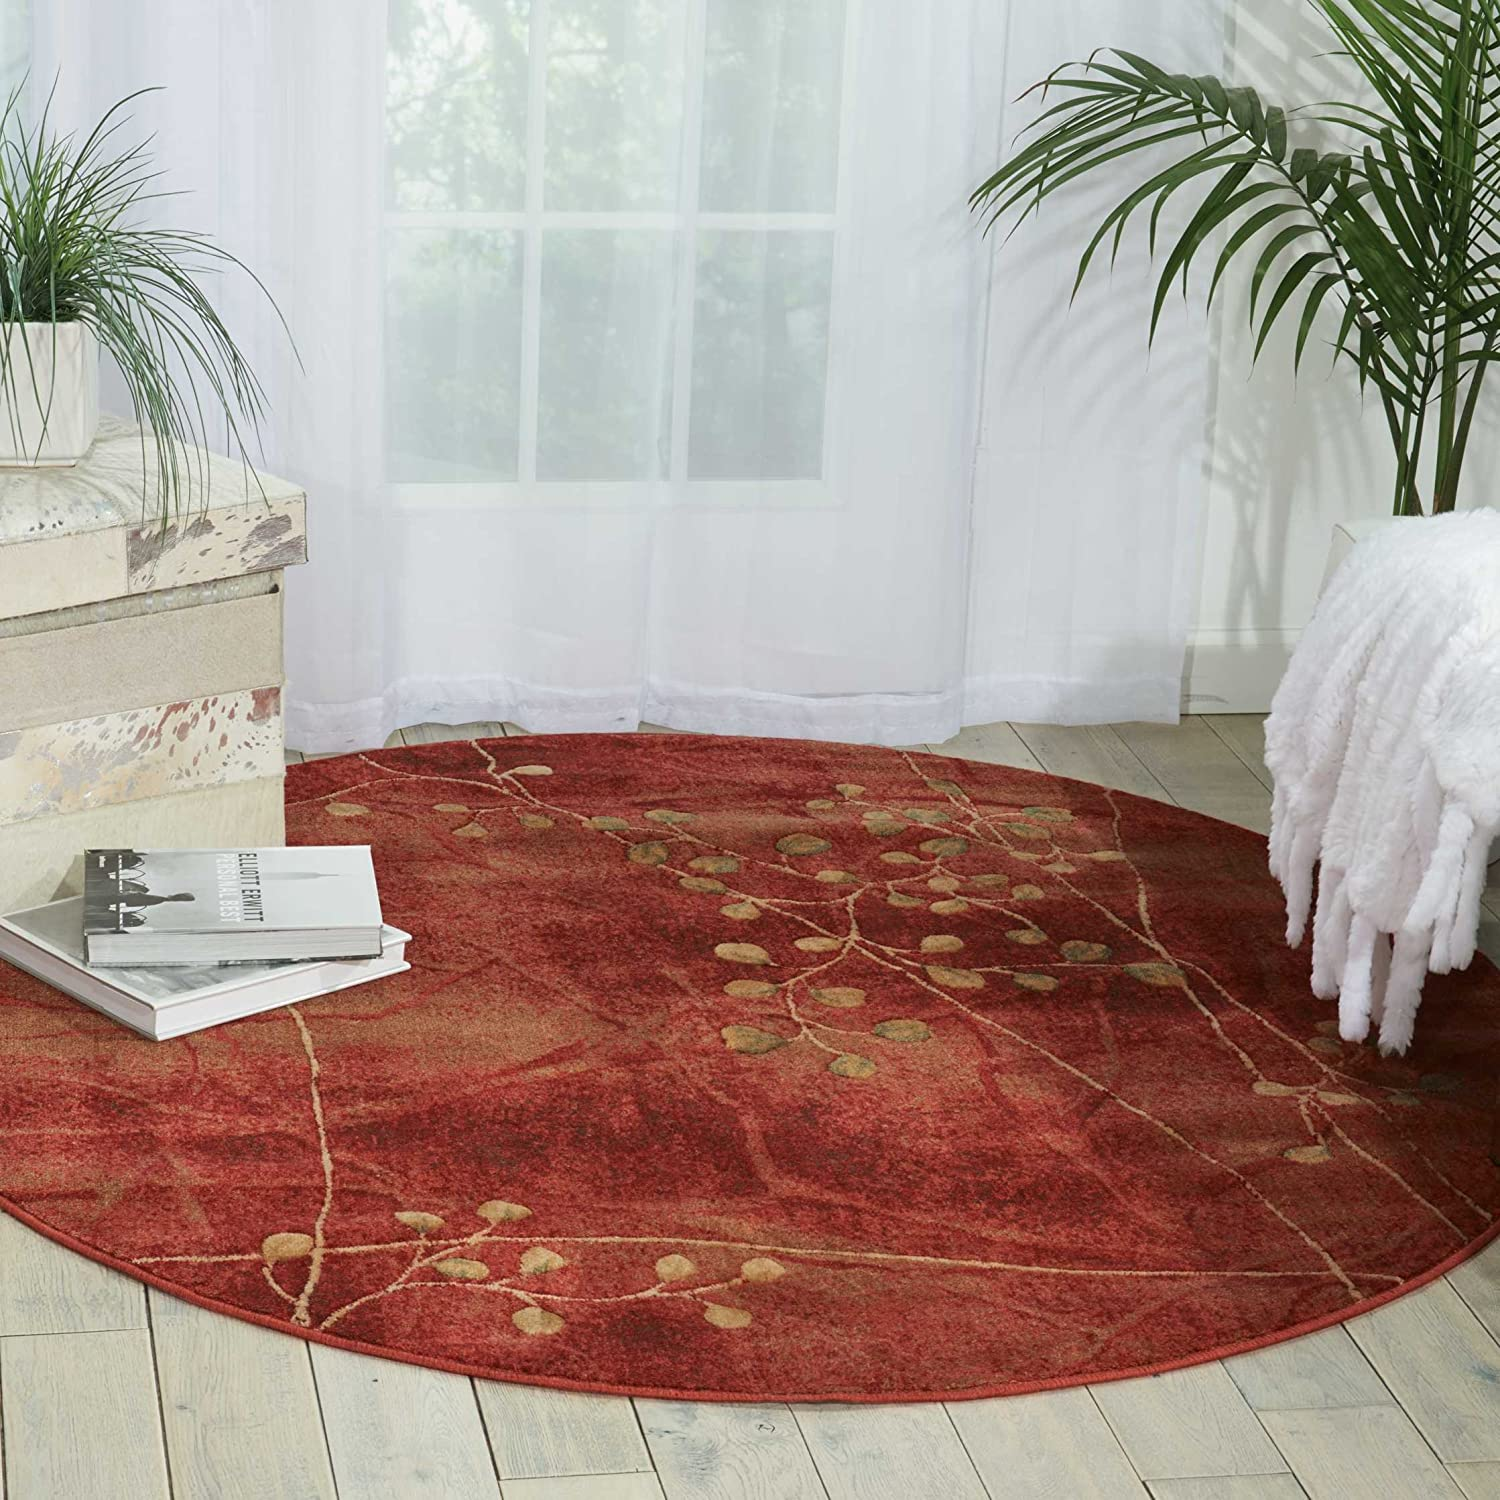 Flame 5'6 x ROUND Nourison Somerset Multicolor Runner Area Rug, 2-Feet 3-Inches by 8-Feet  (2'3  x 8')